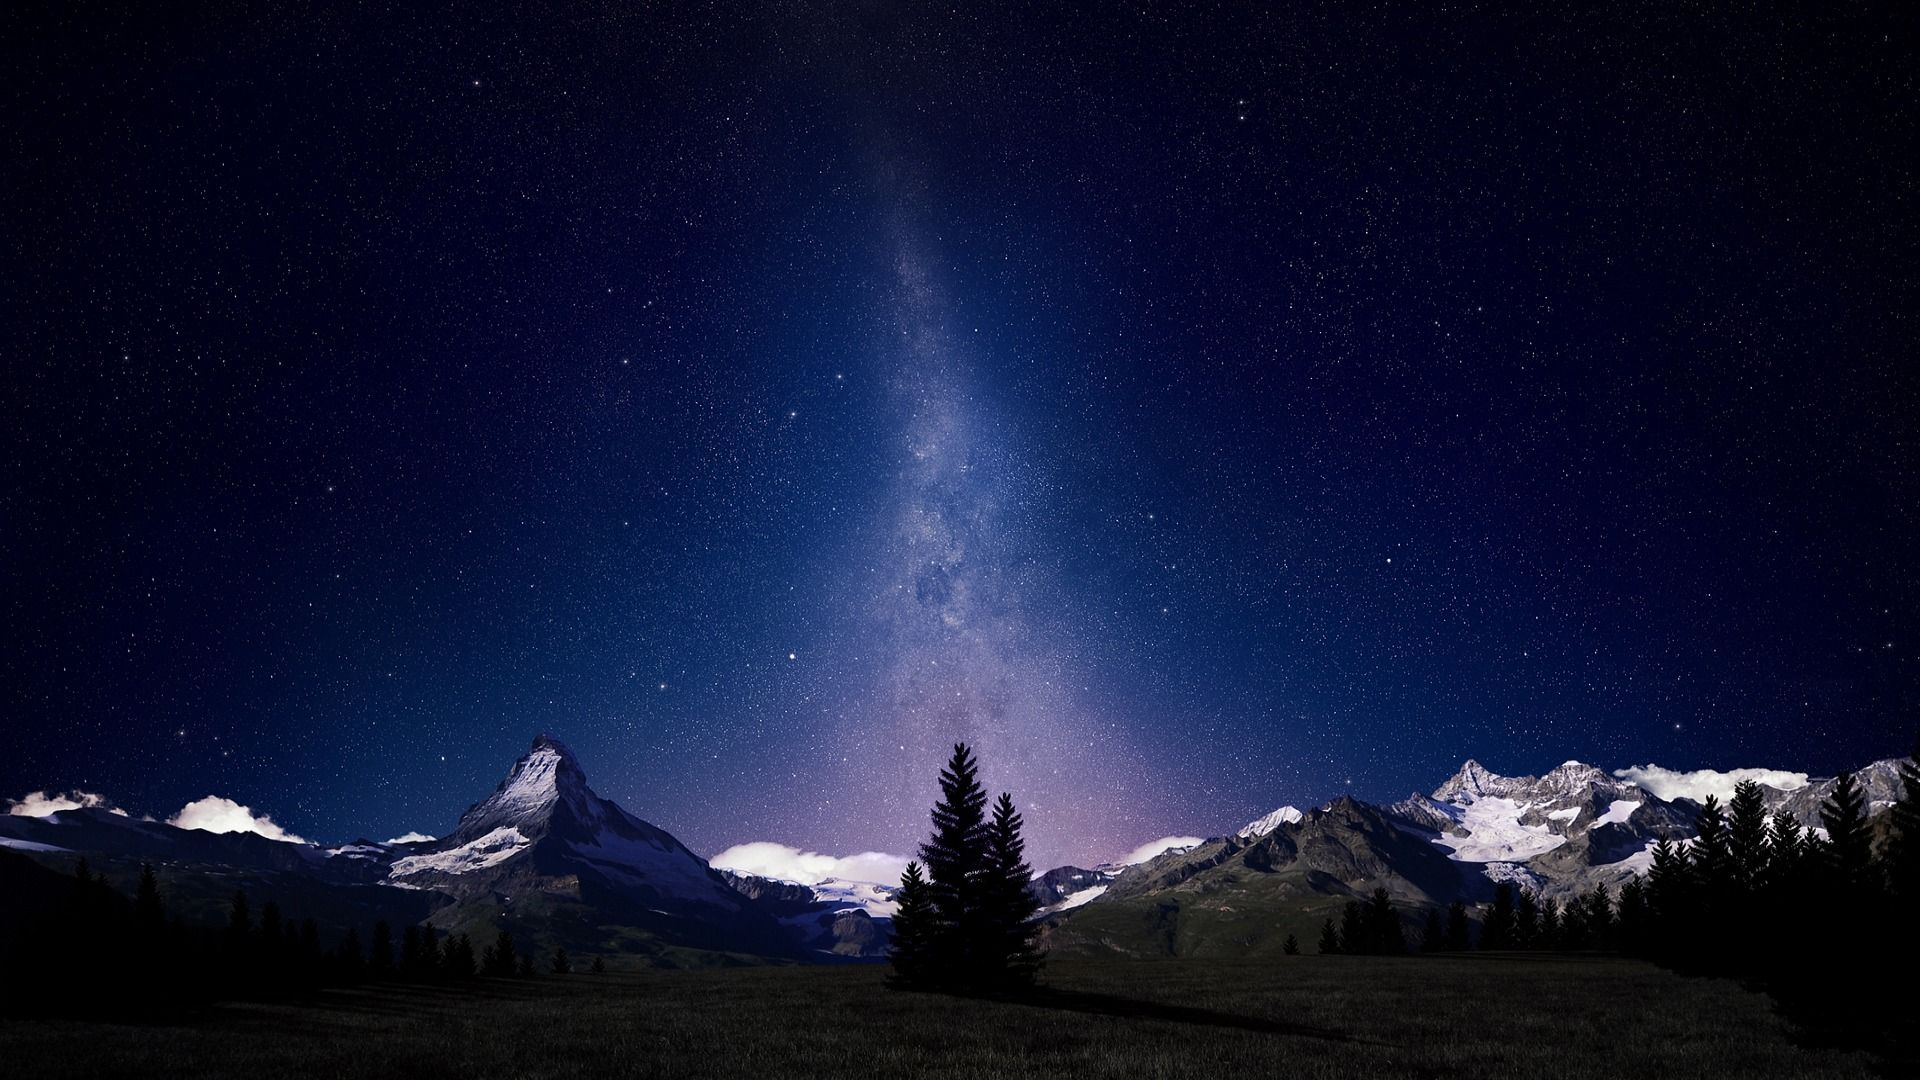 Desktop Wallpaper Night Sky